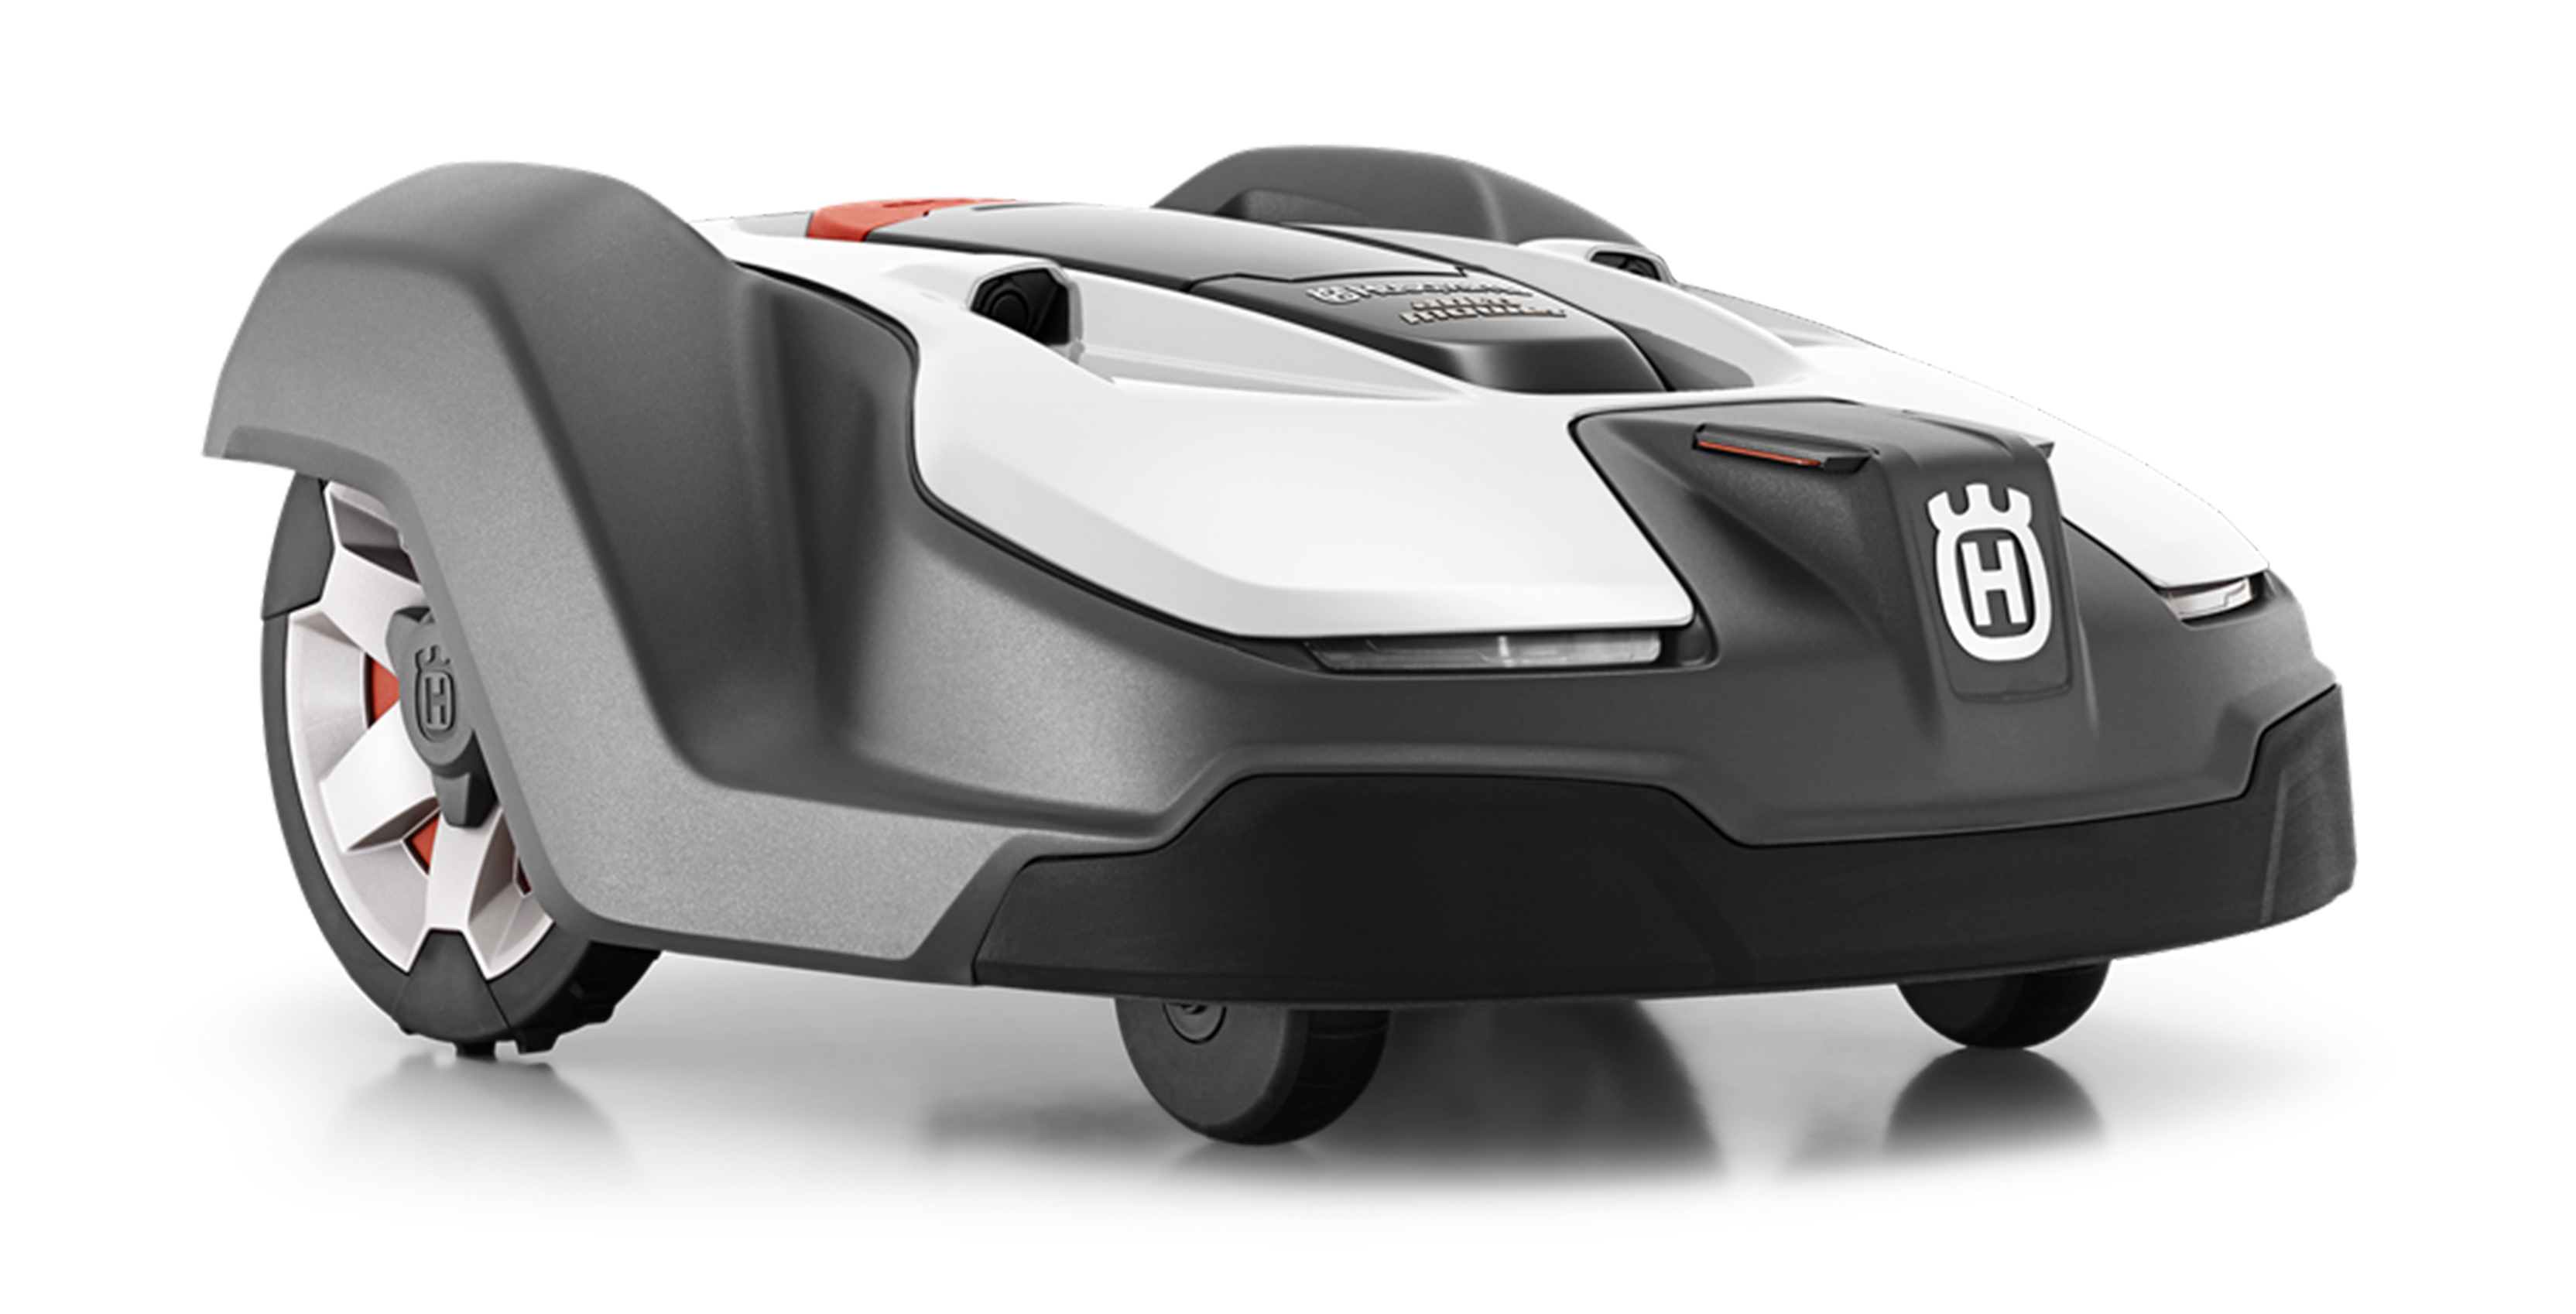 Husqvarna 450x robot lawnmower